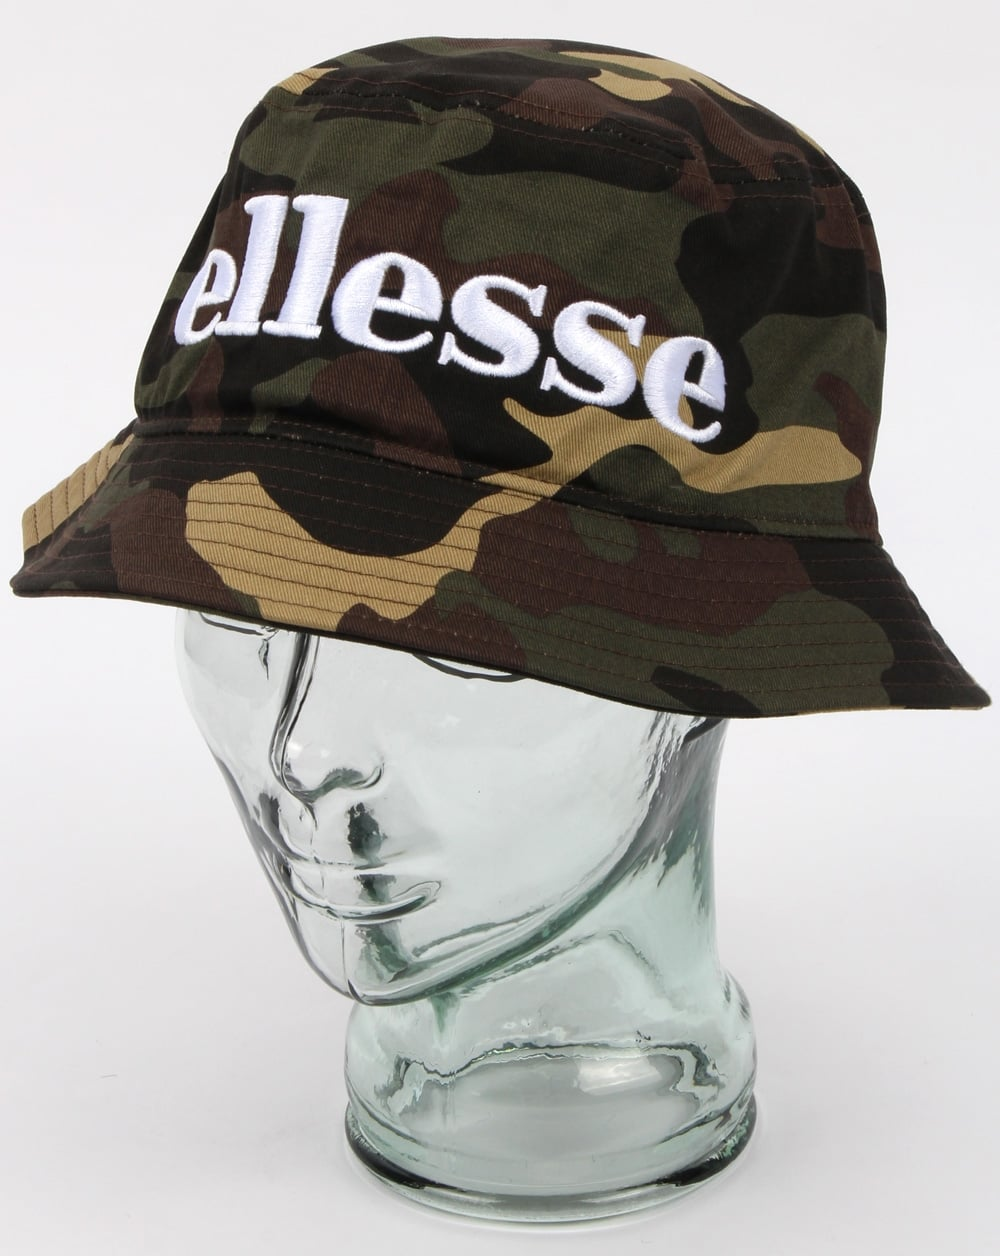 e25fc3dd Ellesse Larrix Bucket Hat Camo, Mens, Hat, Bucket, Cotton, Summer